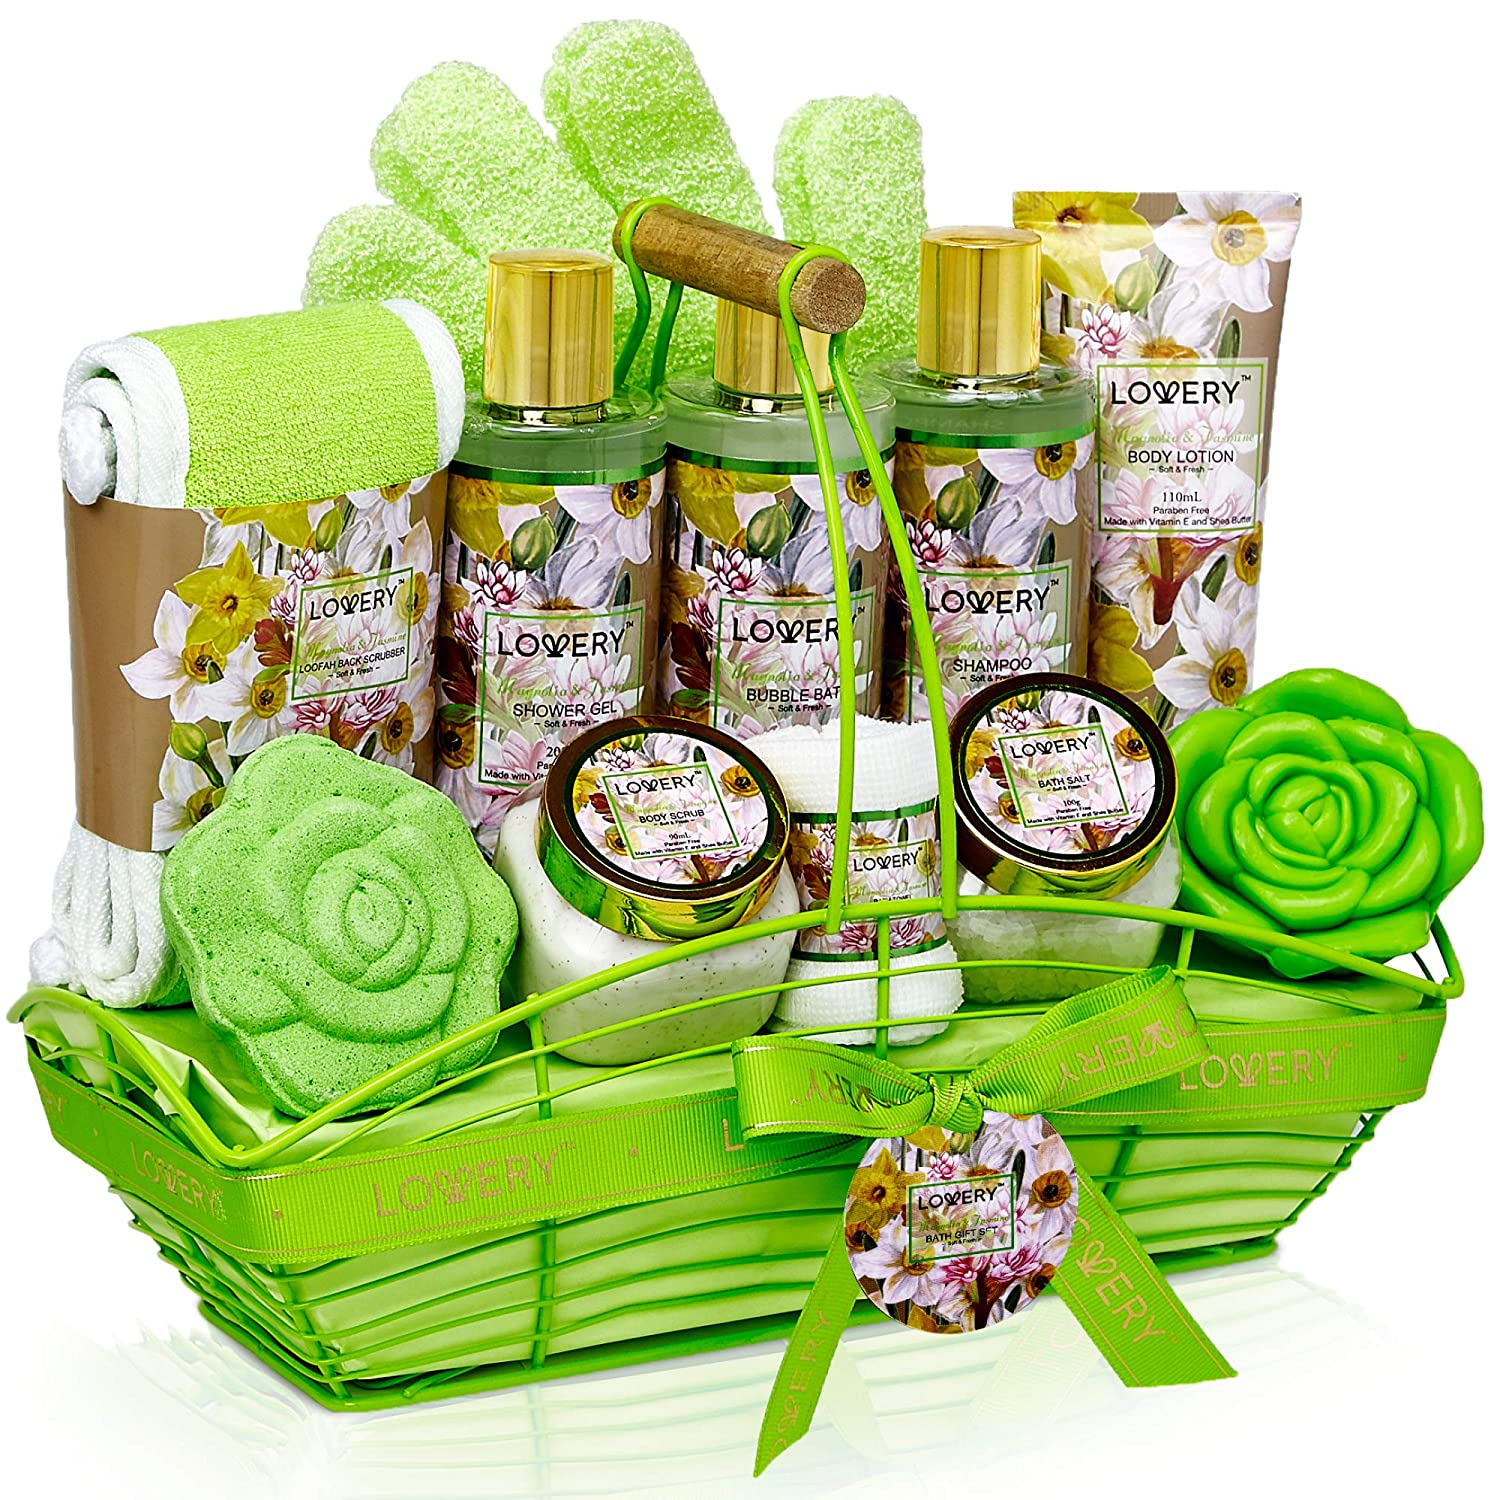 Home Spa Gift Baskets For Women - Bath and Body Gift Basket – Magnolia and Jasmine Home Spa Set, Includes Fragrant Lotions, Bath Bomb, Towel, Shower Gloves, Green Wired Bread Basket & More - 13 Pc Set